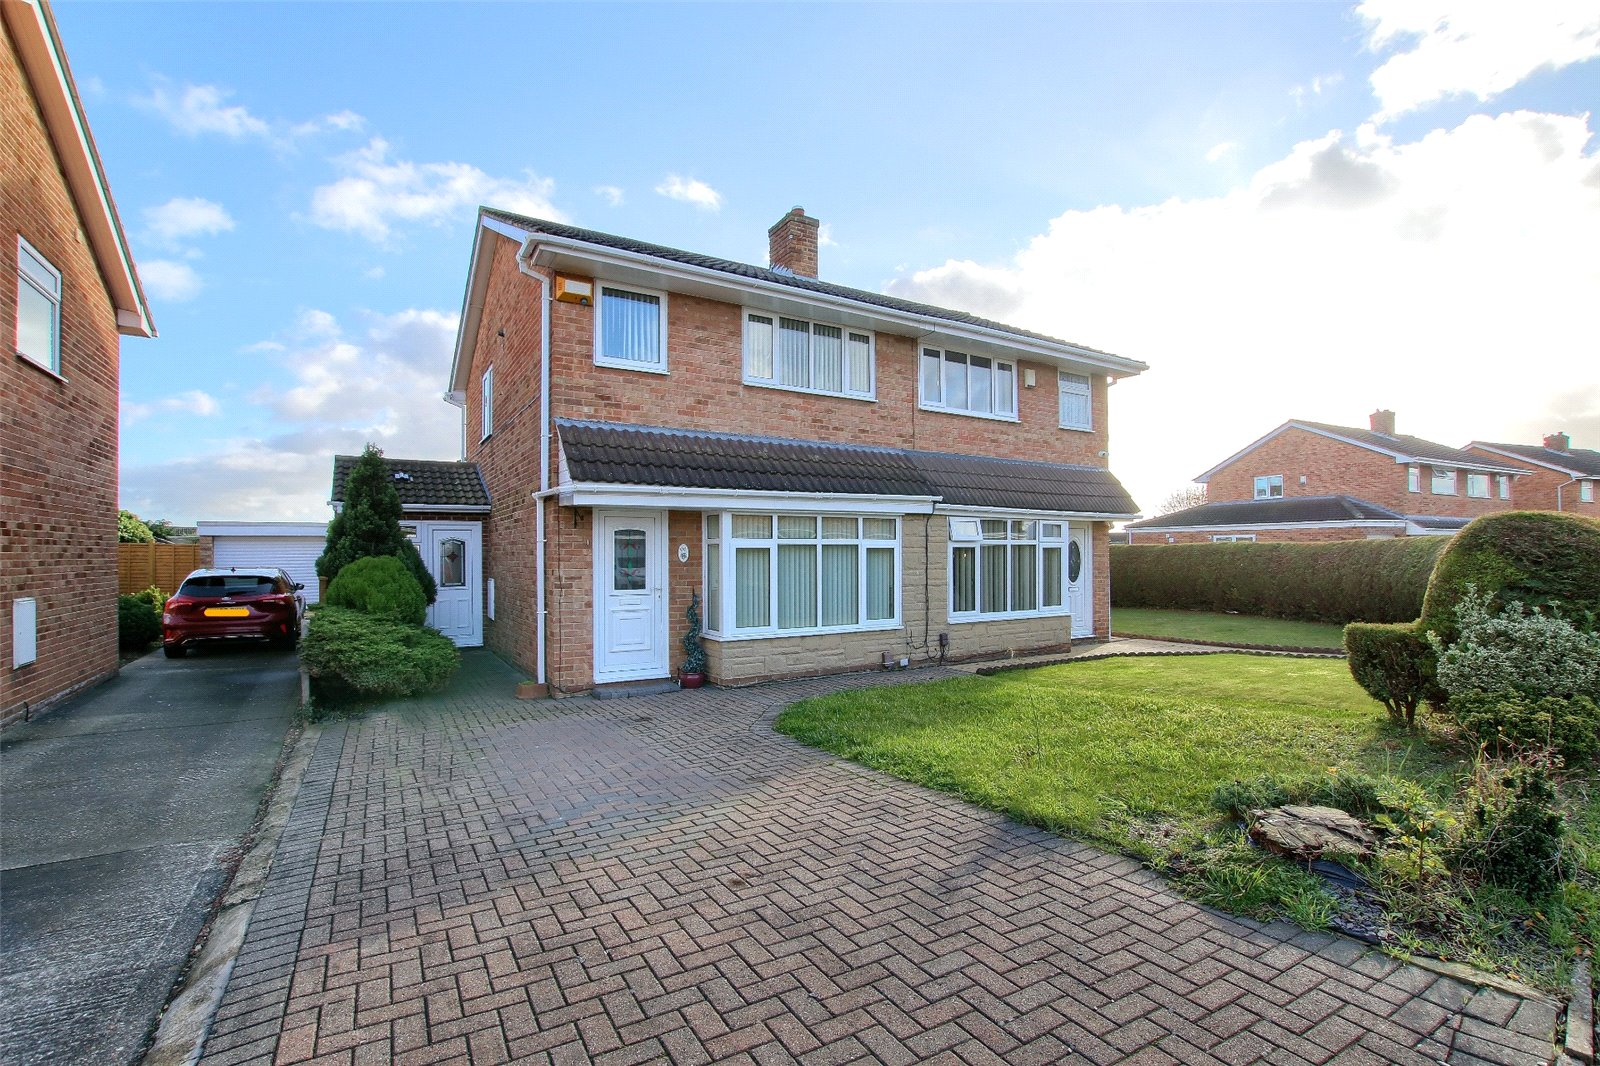 3 bed house for sale in Topcliffe Road, Thornaby 1